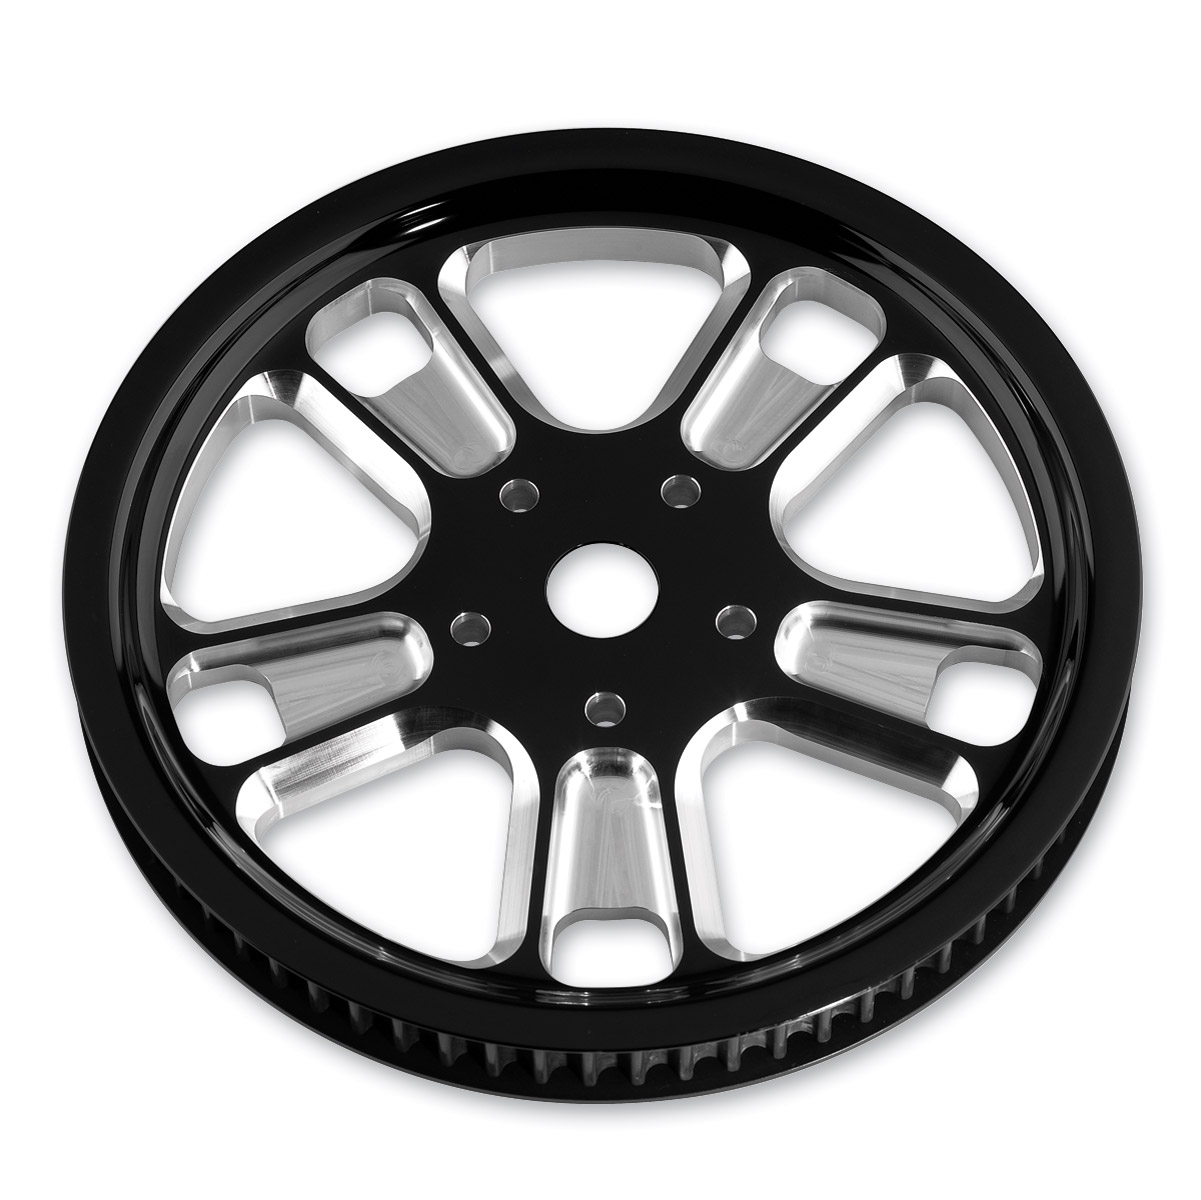 Roland Sands Design Judge Contrast Cut 70T Forged Aluminum Pulley